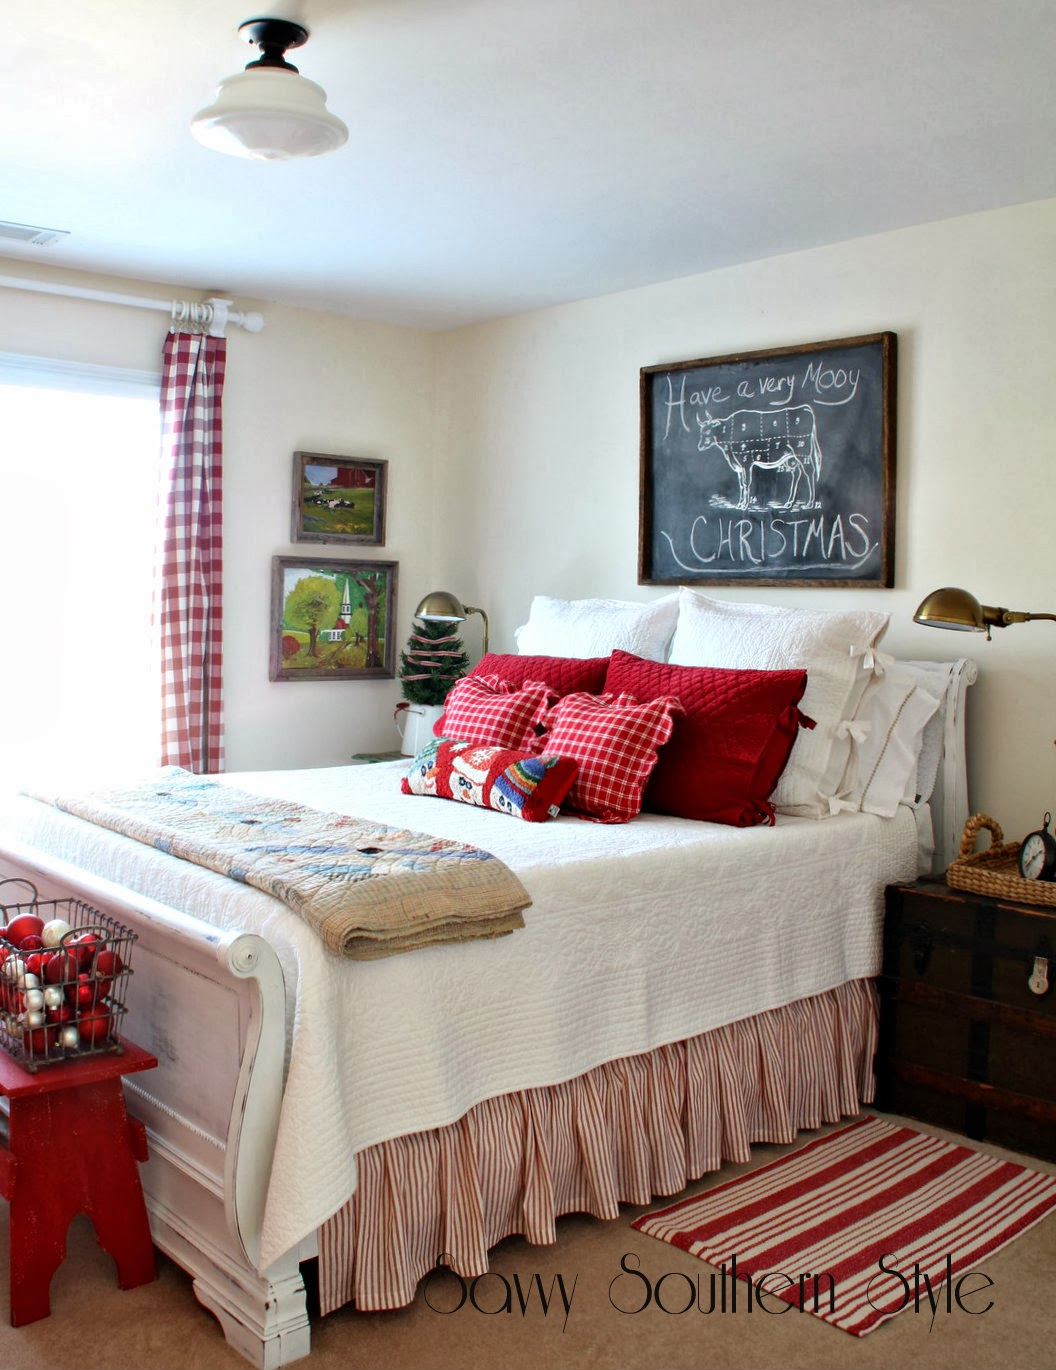 Savvy Southern Style My Favorite Holiday Room 2013